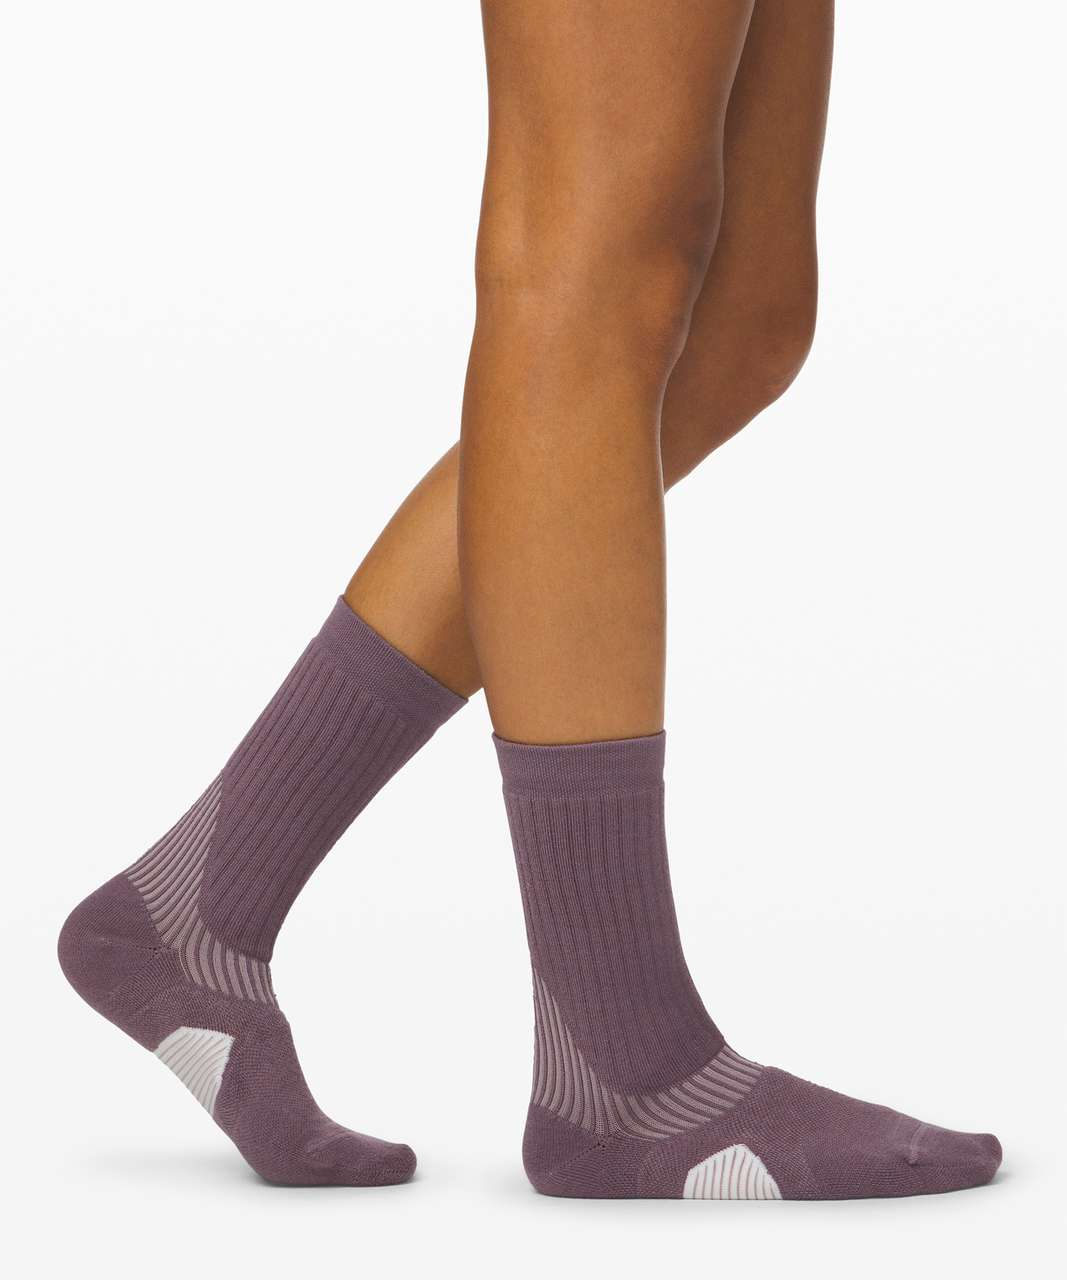 Lululemon Speed Crew Sock *Wool - Frosted Mulberry / Smoky Blush